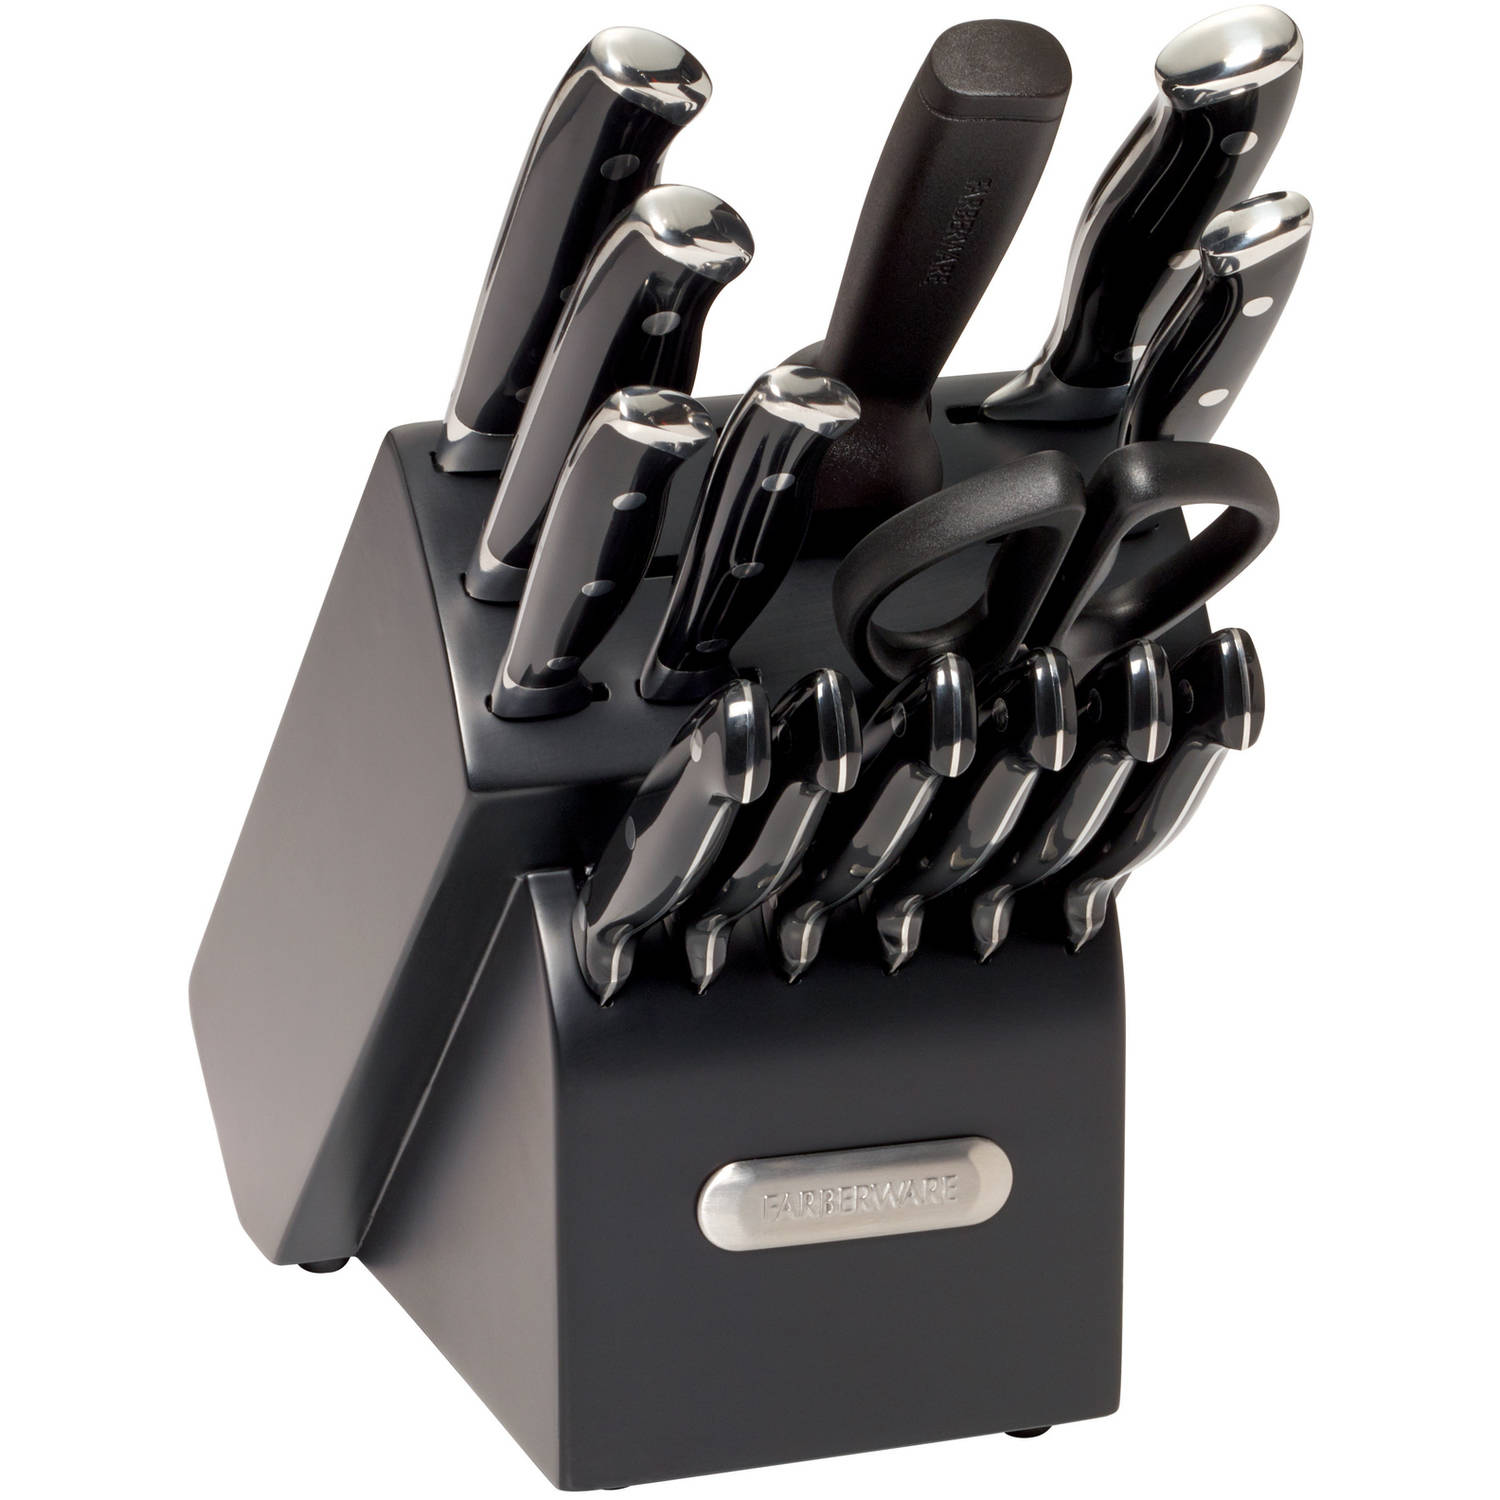 Farberware 15-Piece Forged Triple Riveted Knife Set, Black